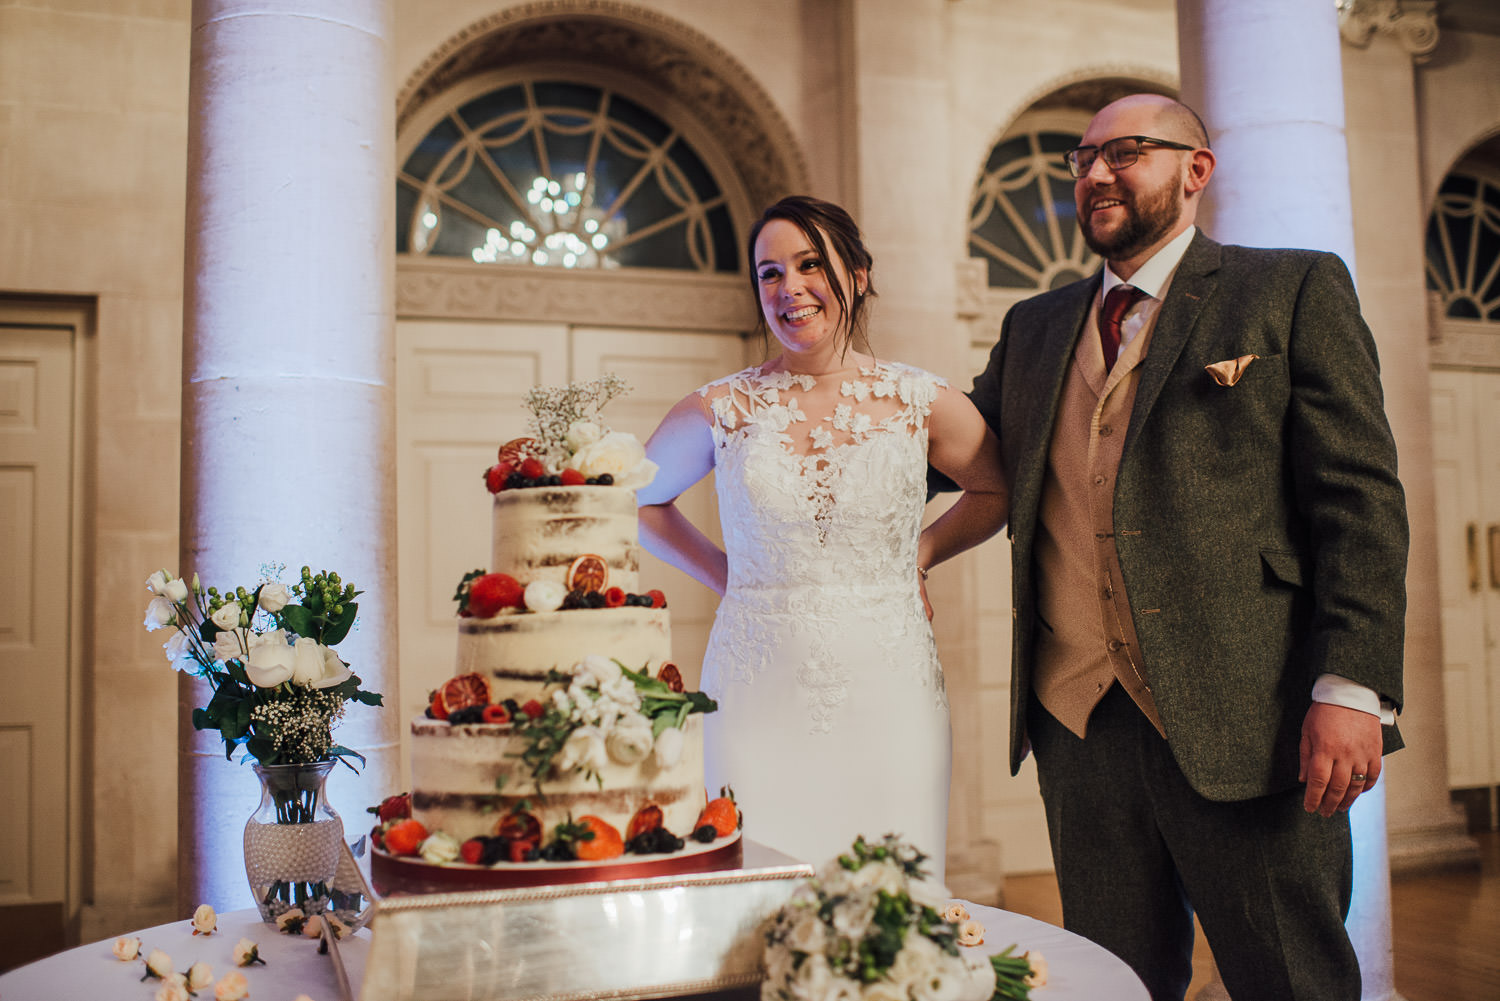 wedding cake at the assembly rooms by bath wedding photographer the shannons photography